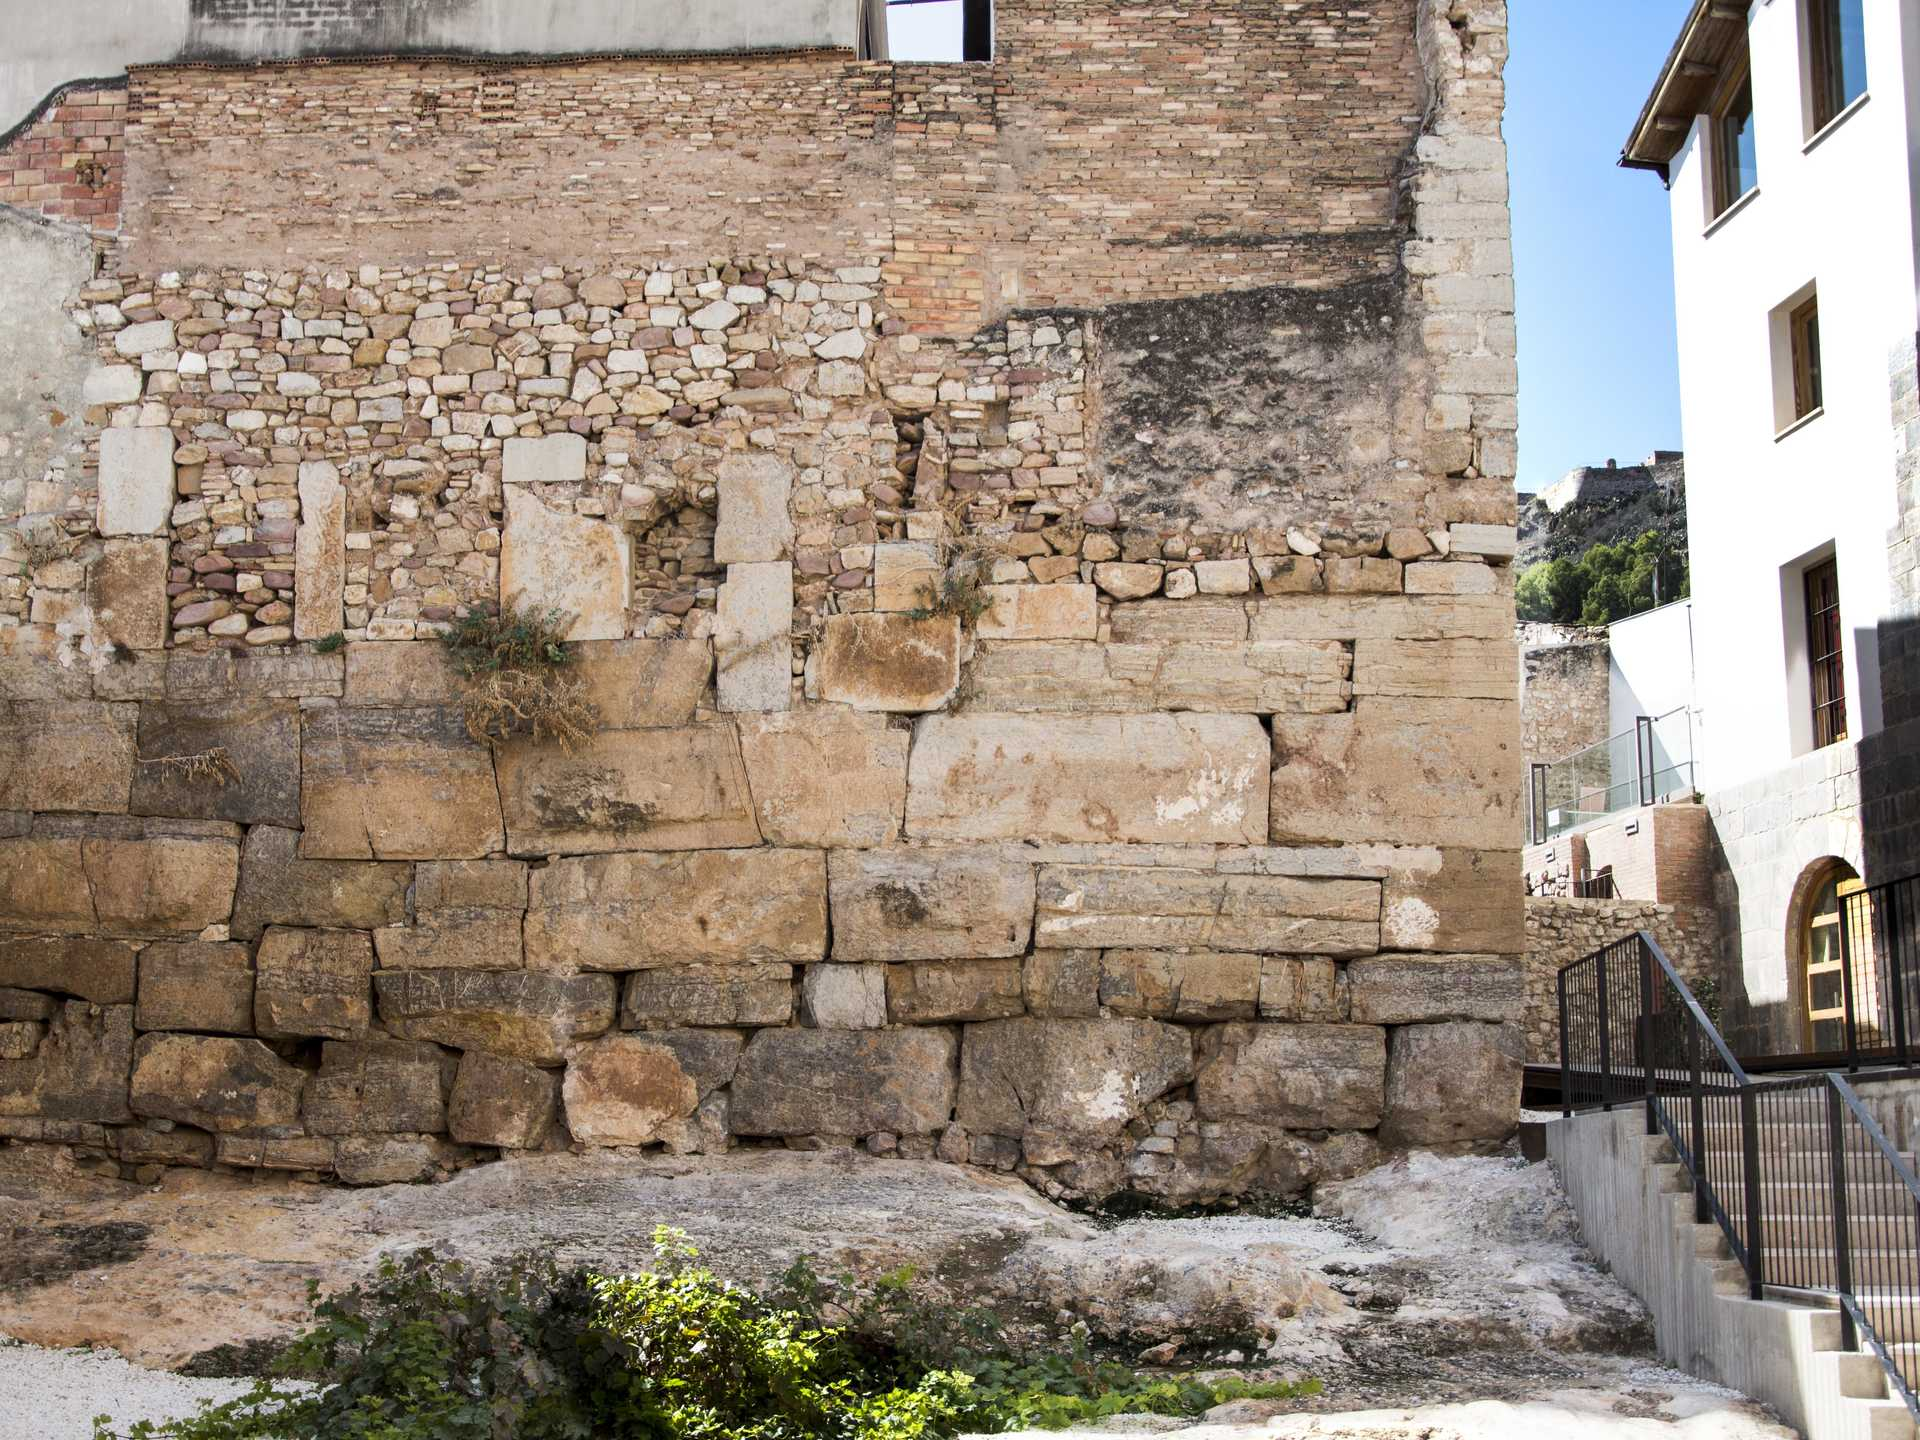 The Temple of Diana (remains of the walls)